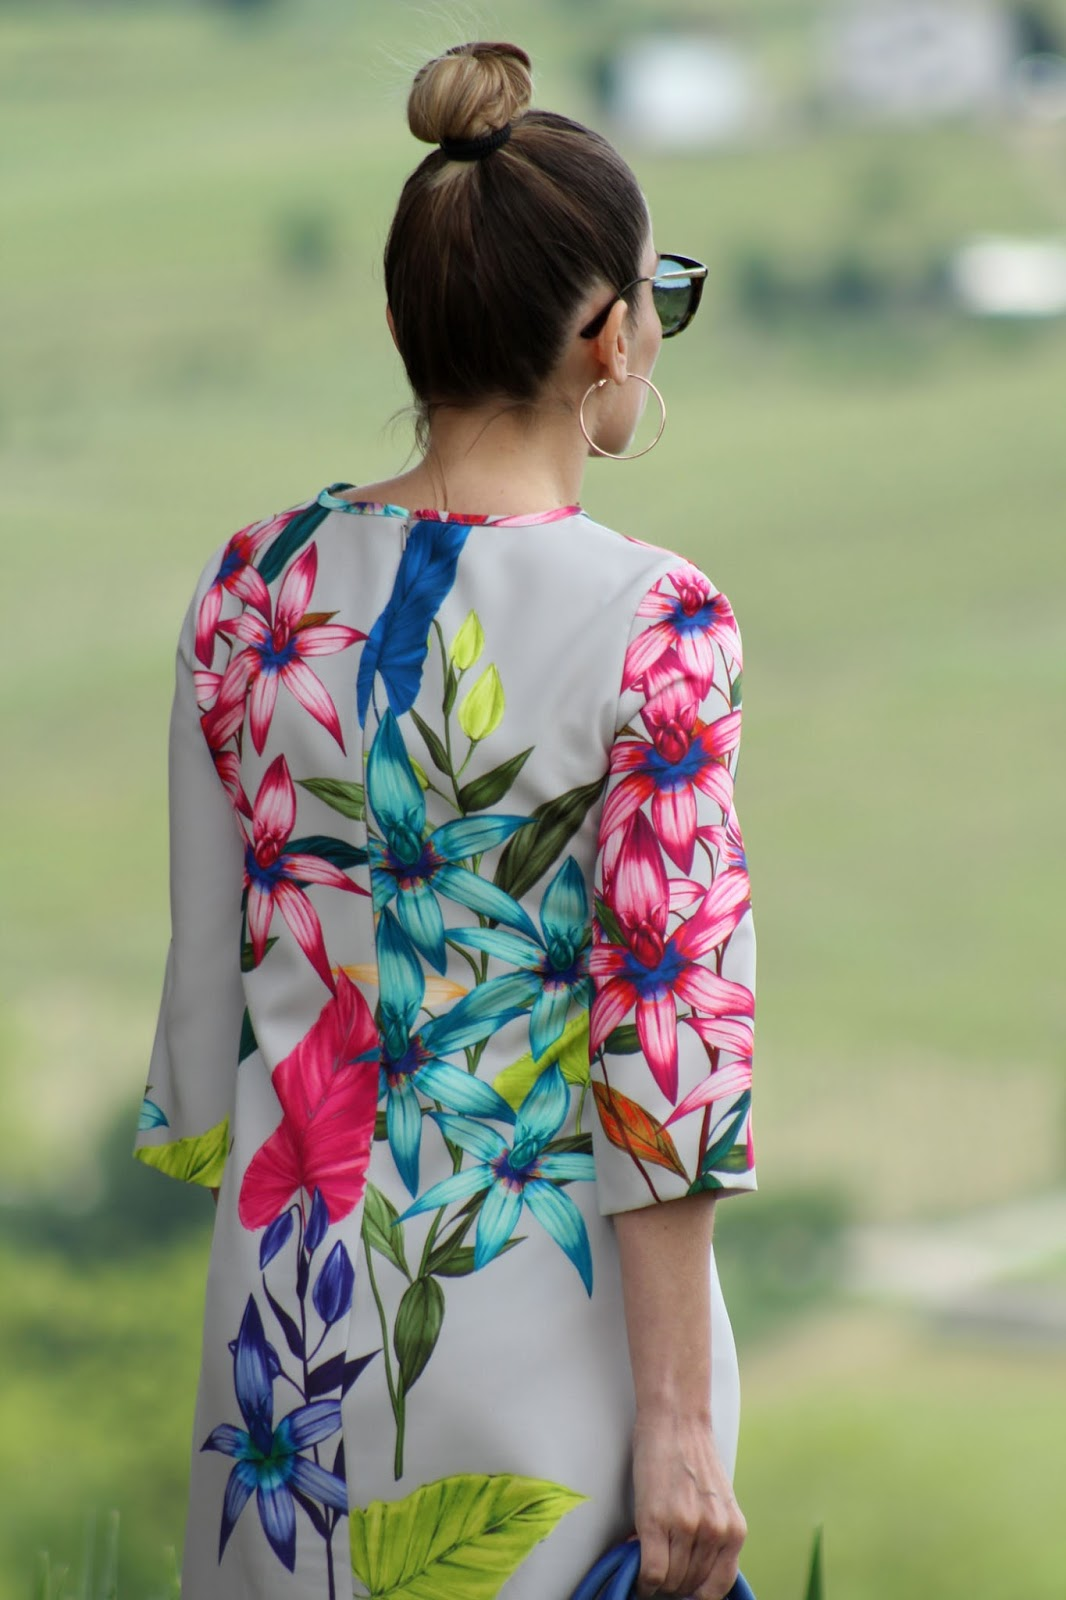 Come indossare un floral dress - Eniwhere Fashion - Imperial